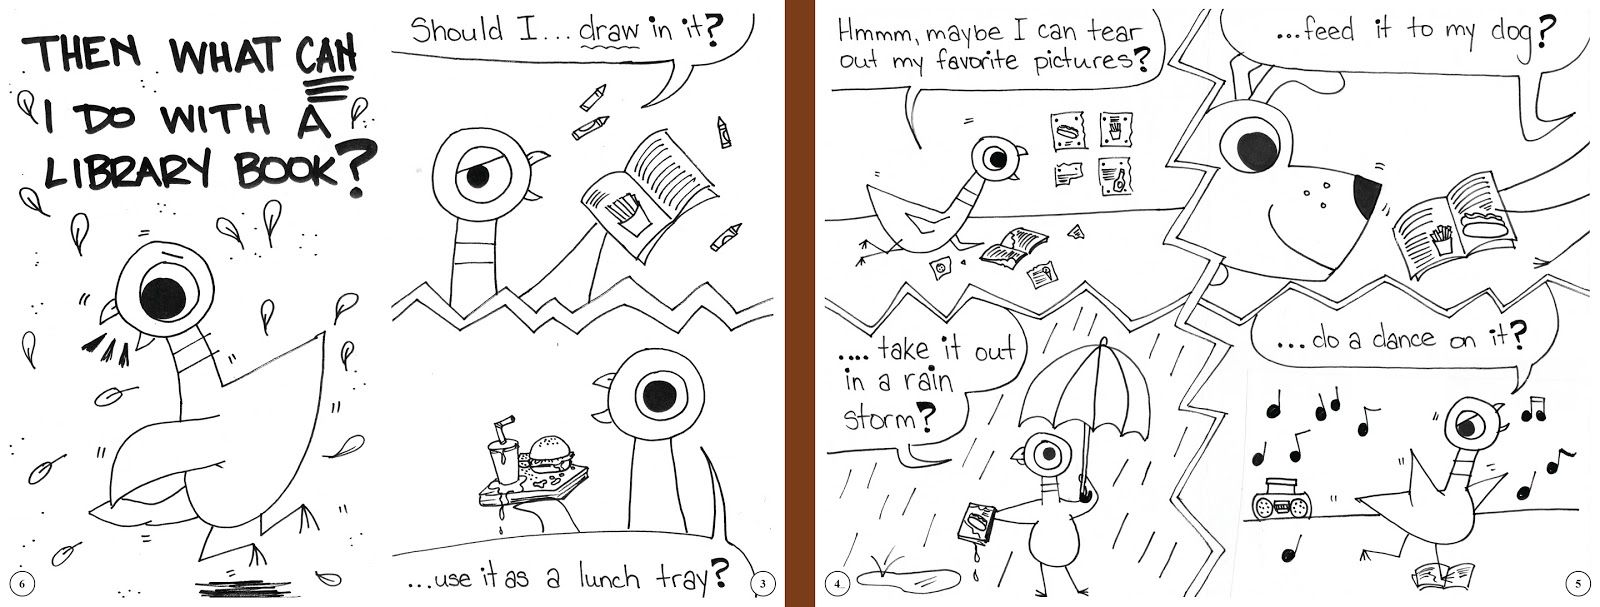 Don T Let The Pigeon Ruin The Library Book Printable Coloring